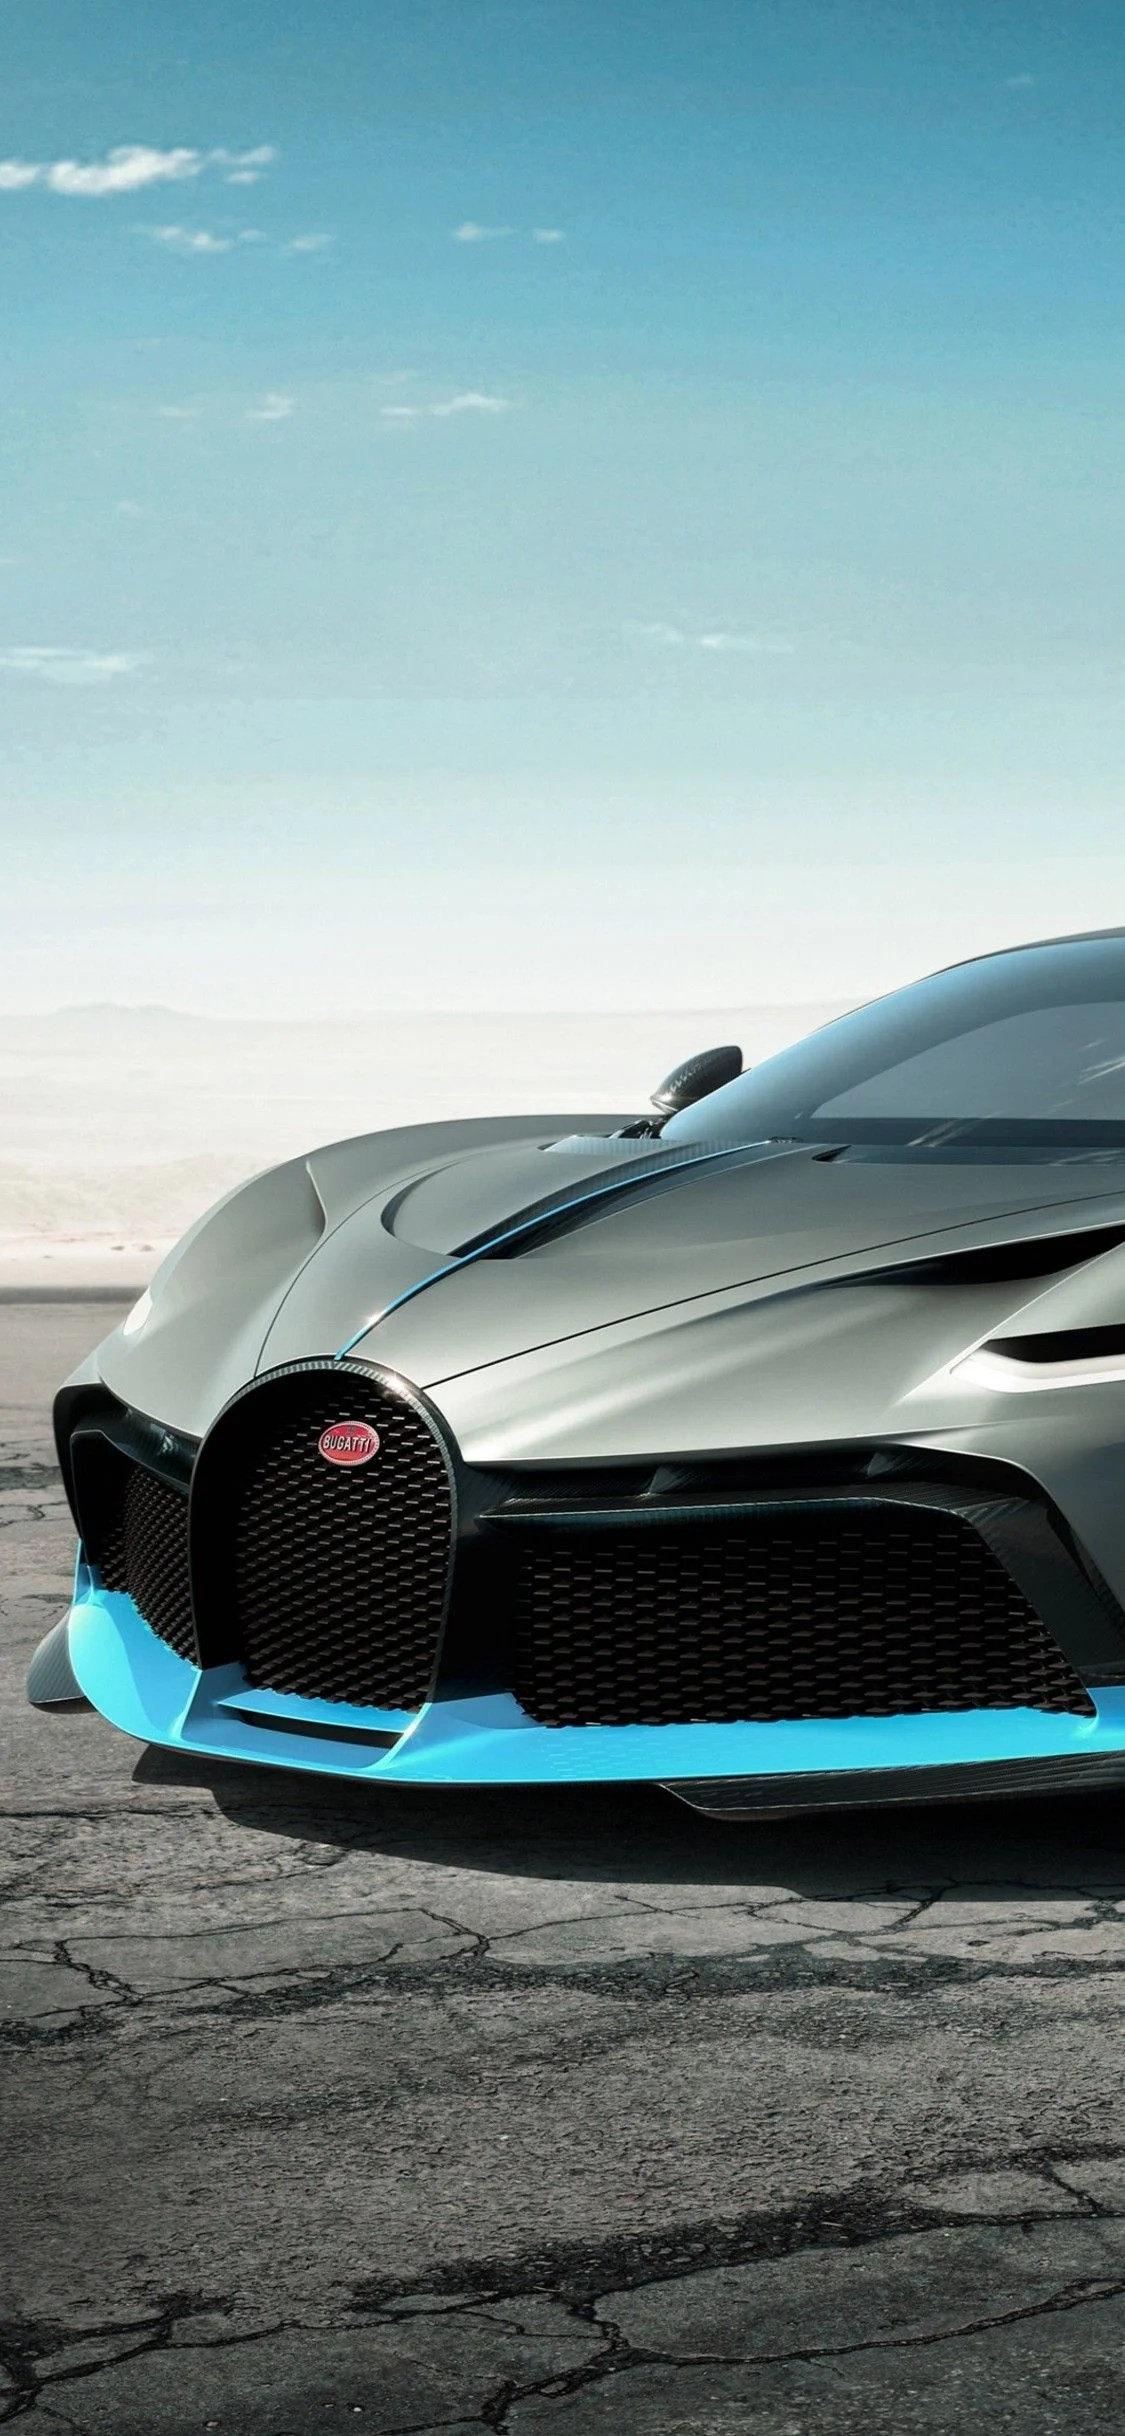 The great collection of anime cars desktop wallpapers for desktop, laptop and mobiles. Best Car Wallpapers For Iphone X Picture Idokeren